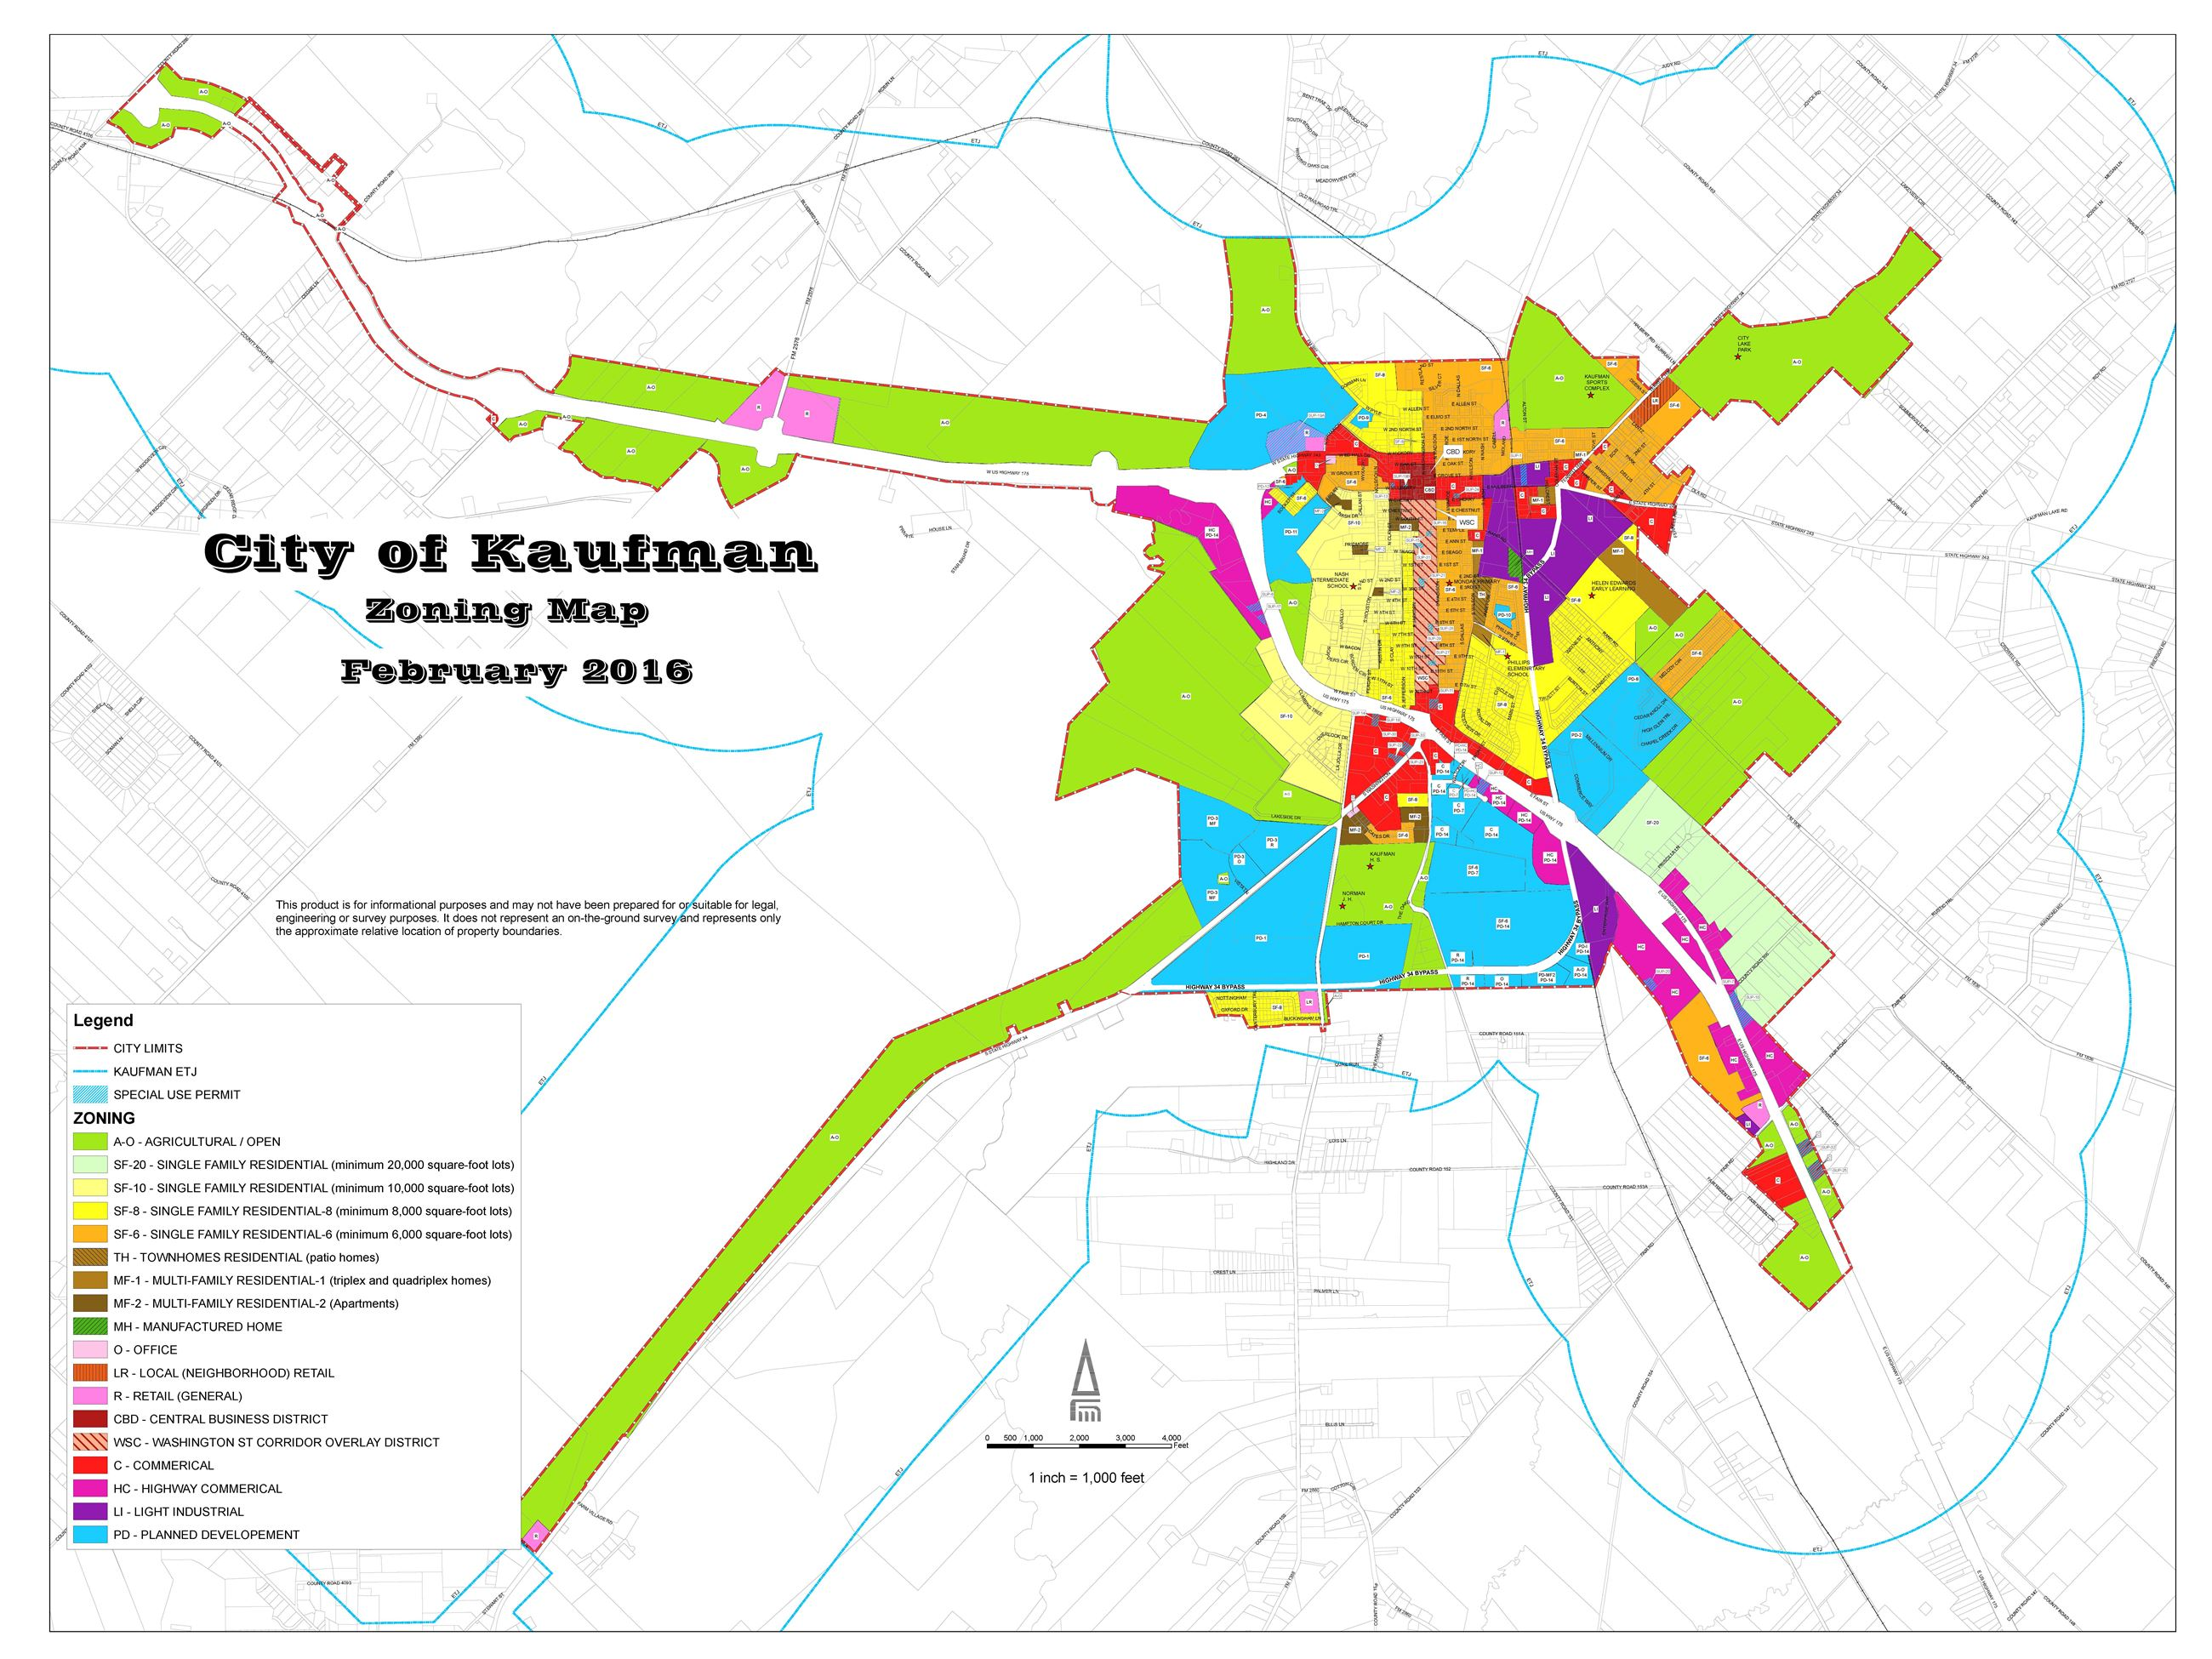 2016 Kaufman Zoning Map